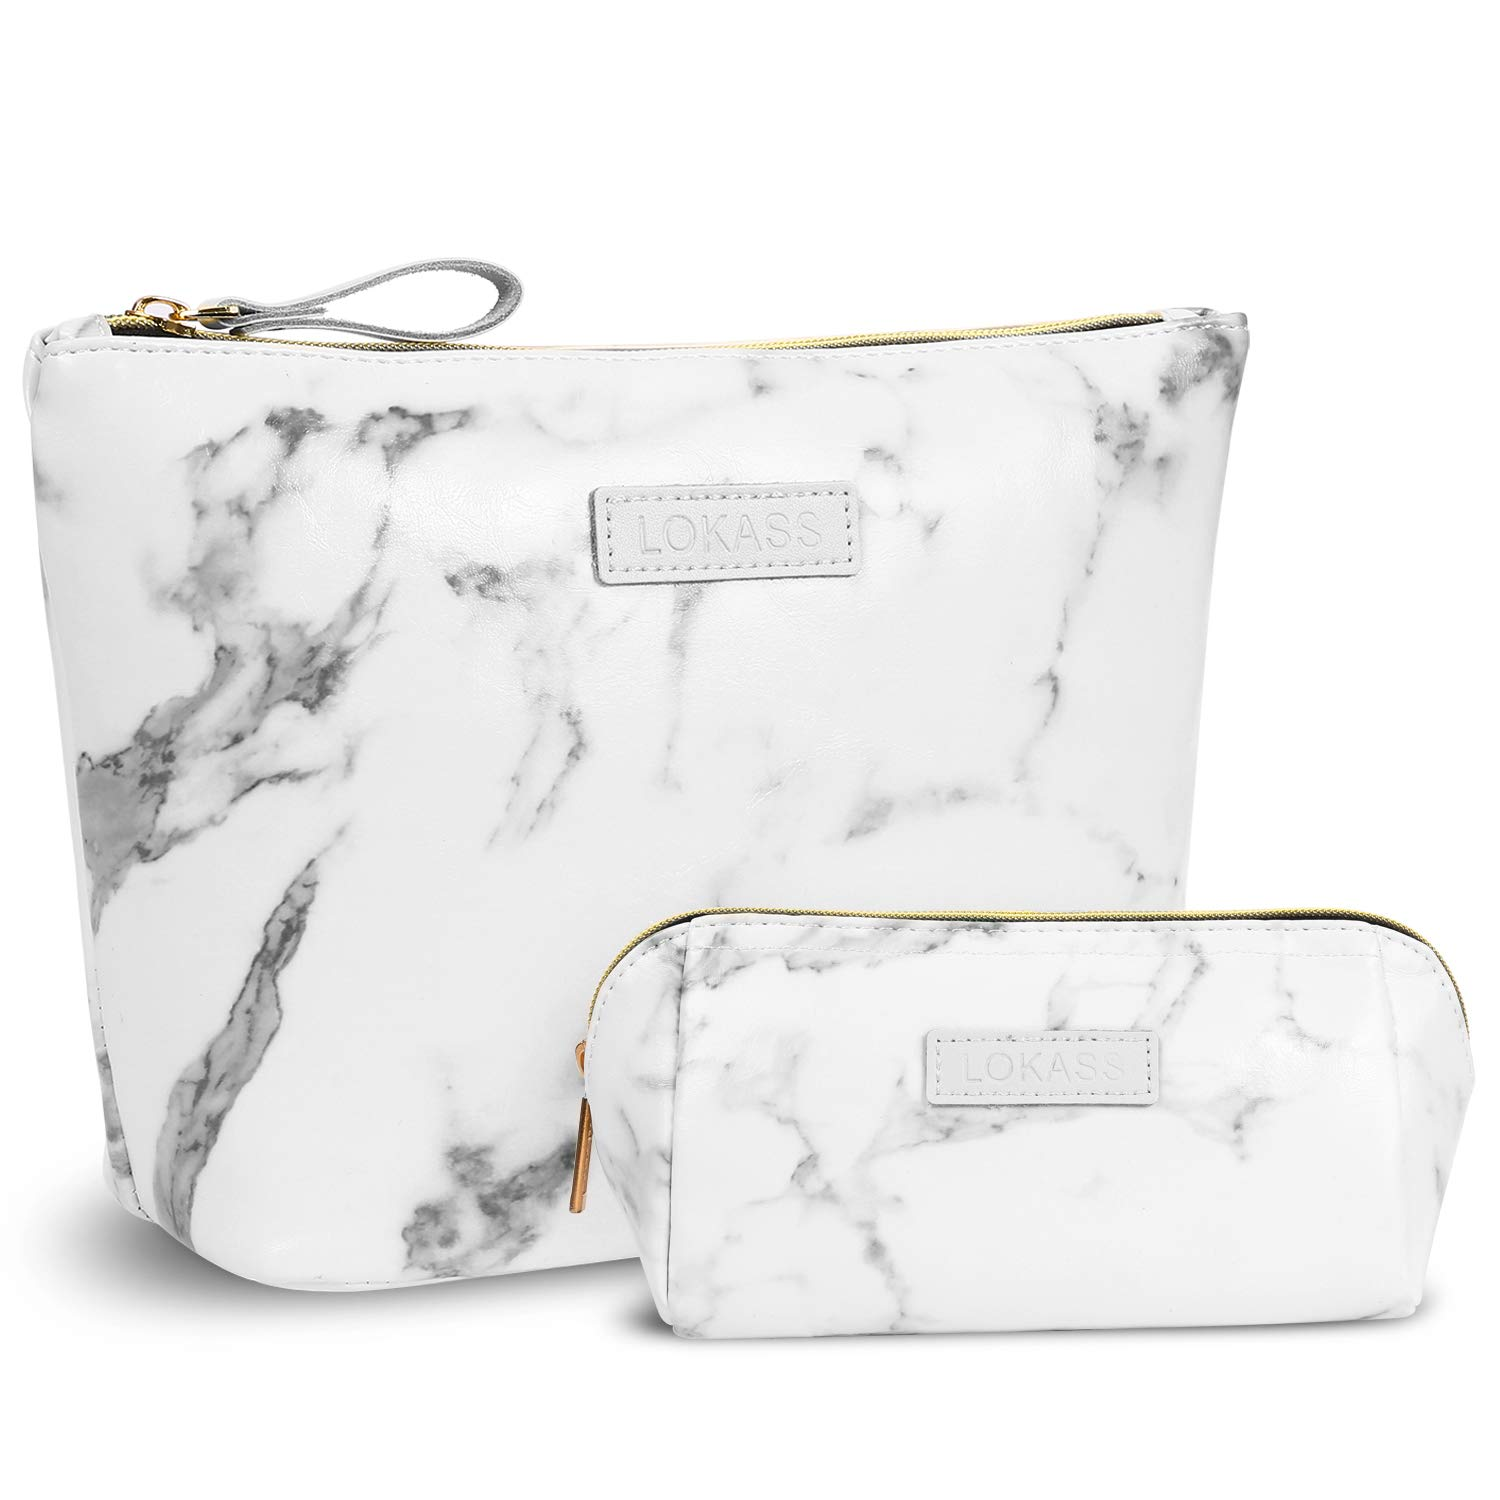 NiceEbag Large Makeup Bag Small Cosmetic Pouch for Purse Handy Makeup Bags Set Cute Travel Toiletry Organizer for Women, Cosmetics, Make Up Tools, Toiletries 2 in 1,Marble